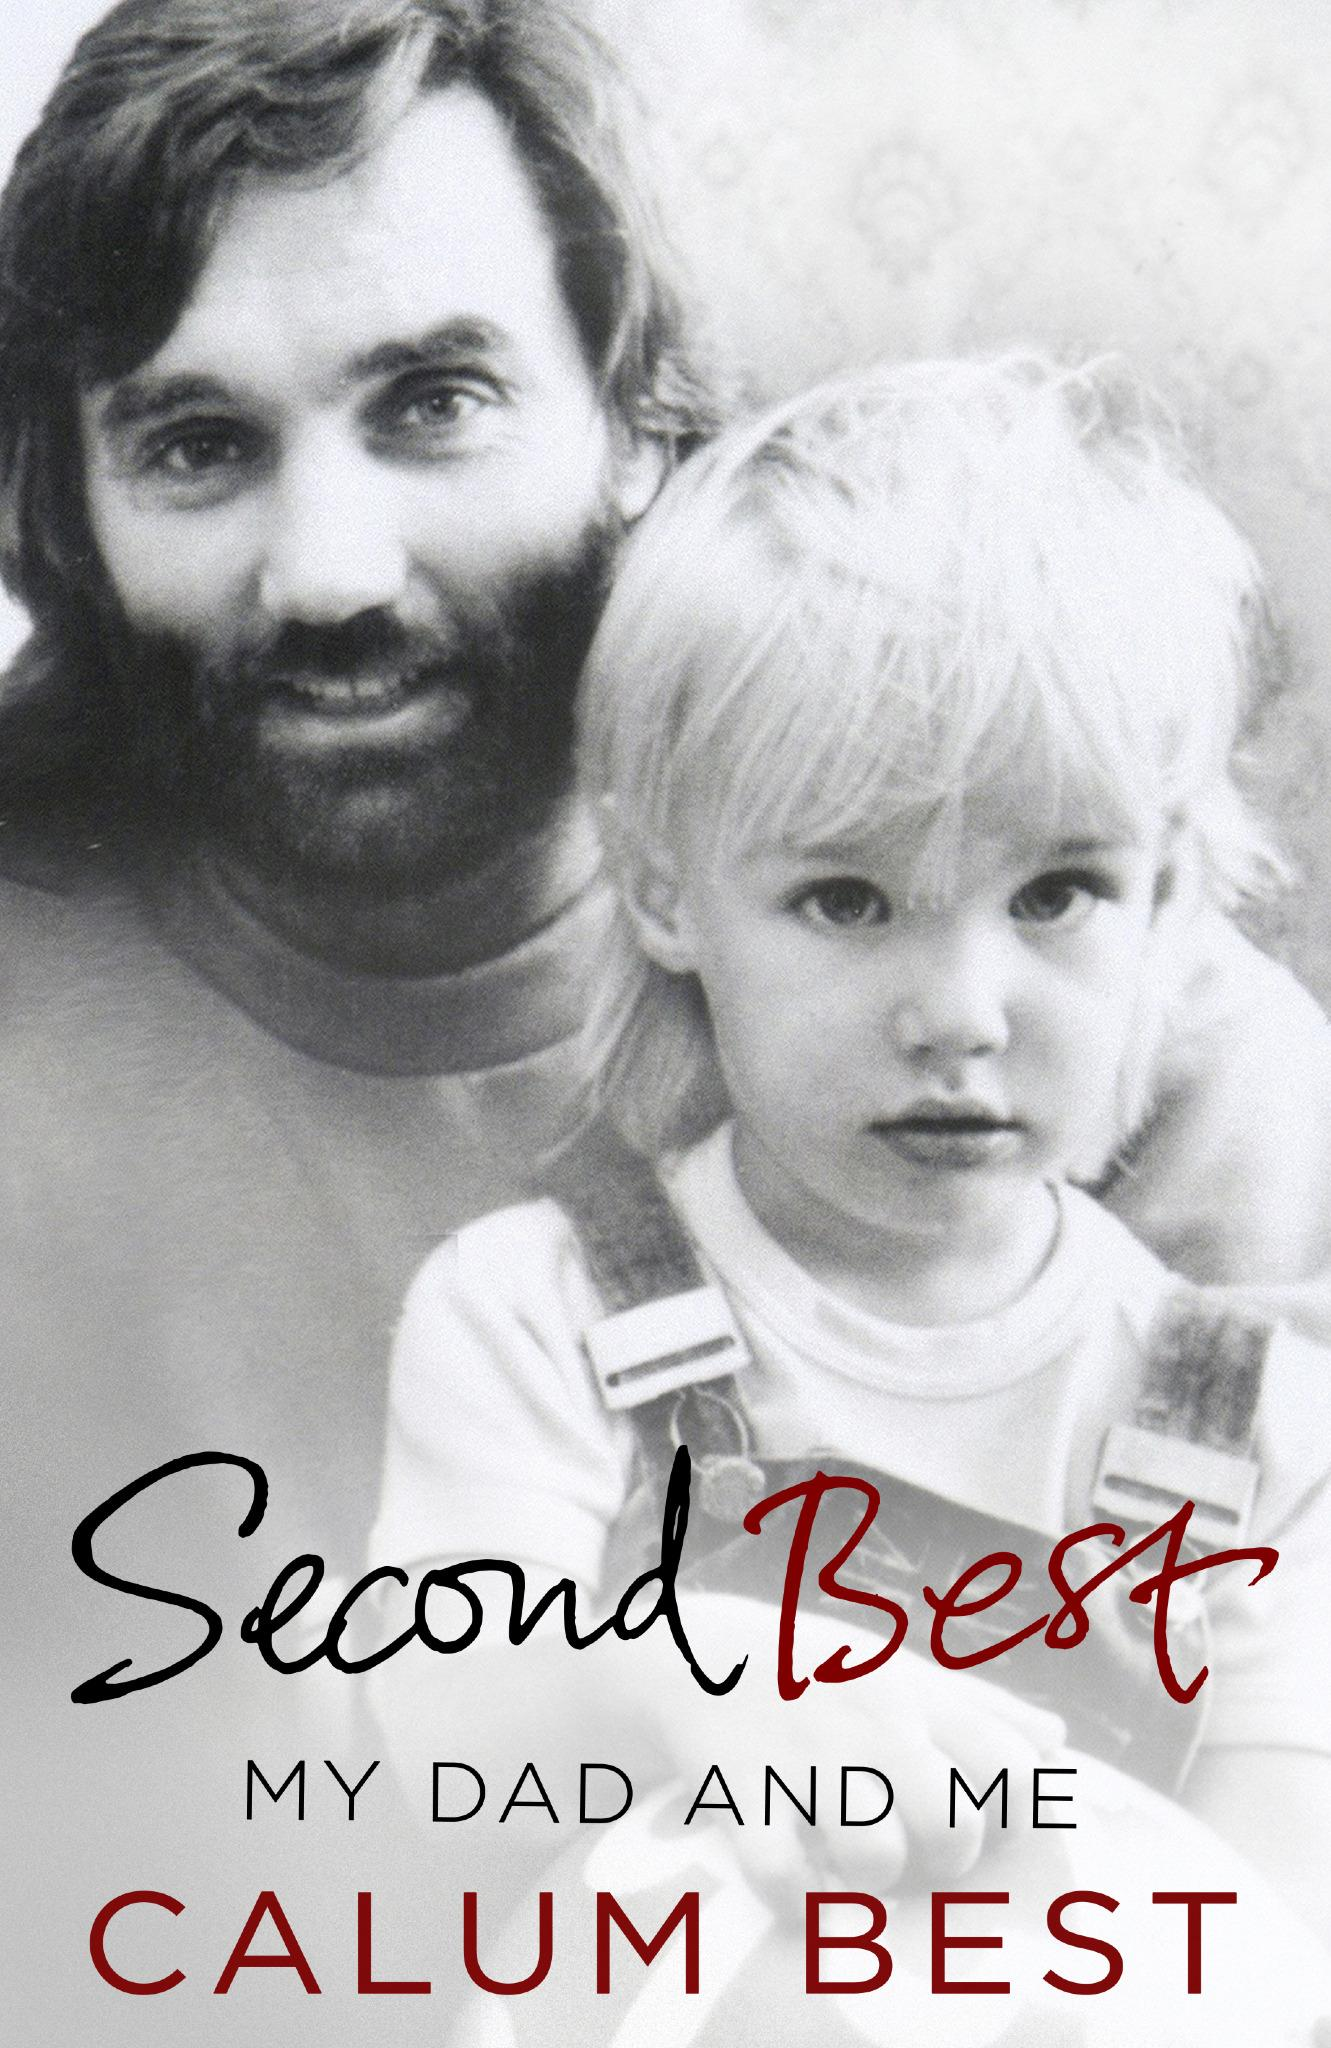 RT @coccoanais: @TransworldBooks: more about @CalumBest's book, Second Best, here. out March 26. http://t.co/ii9zYlvsyc #CBBCalum http://t.…